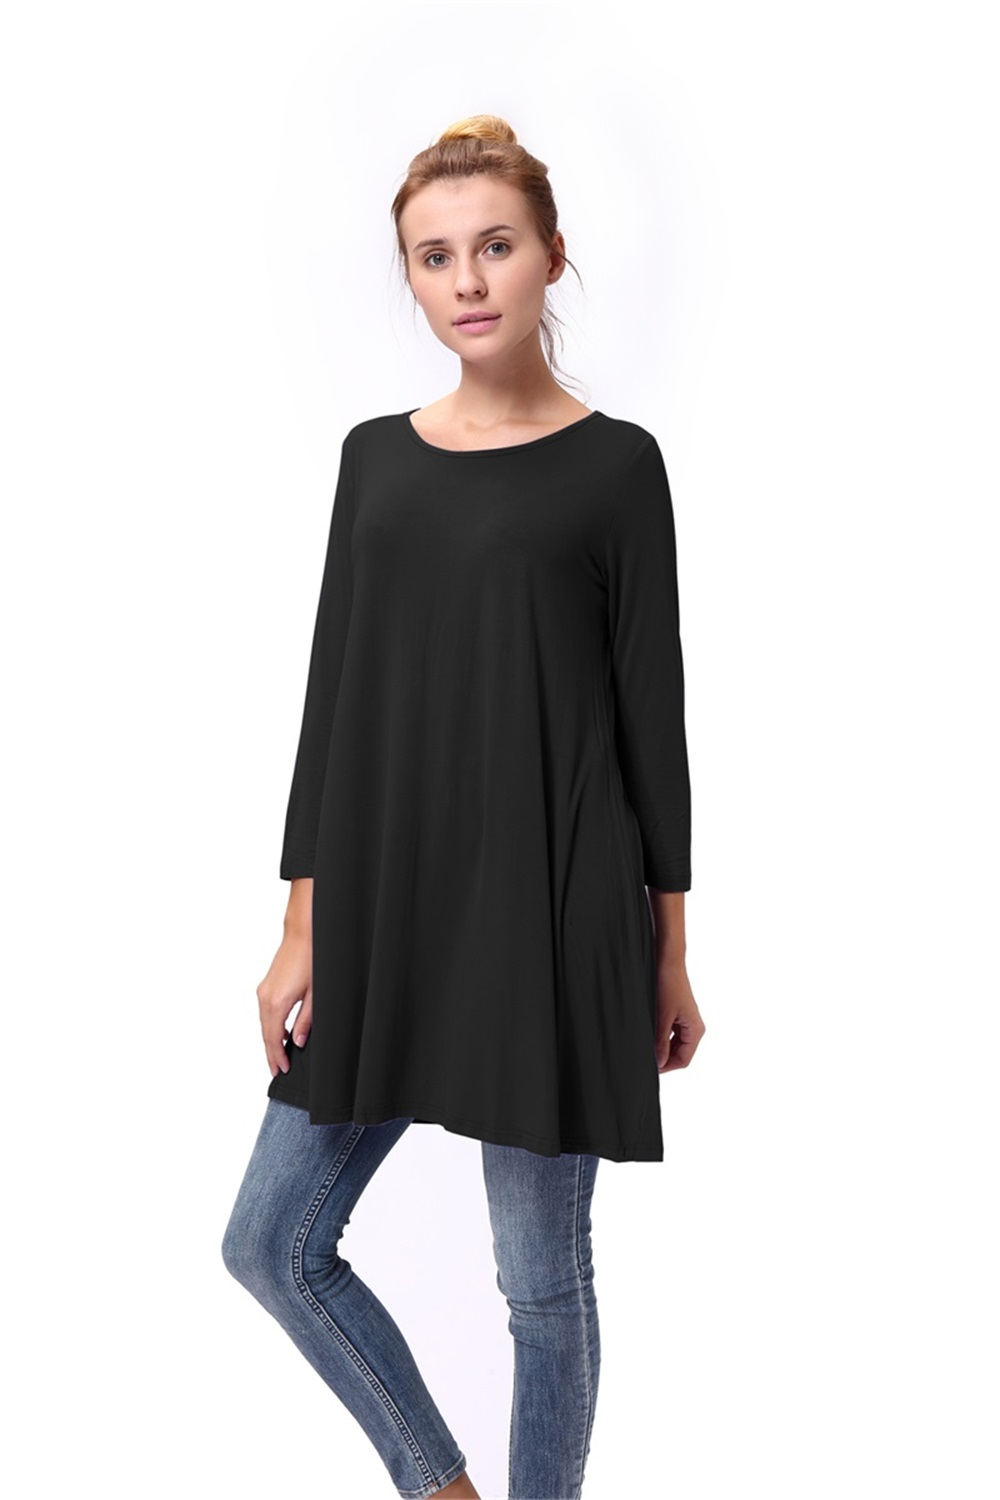 Women-Casual-Round-Neck-3-4-Long-Sleeve-Trapeze-Tunic-Top-Lady-Loose-Fit-Dress thumbnail 16